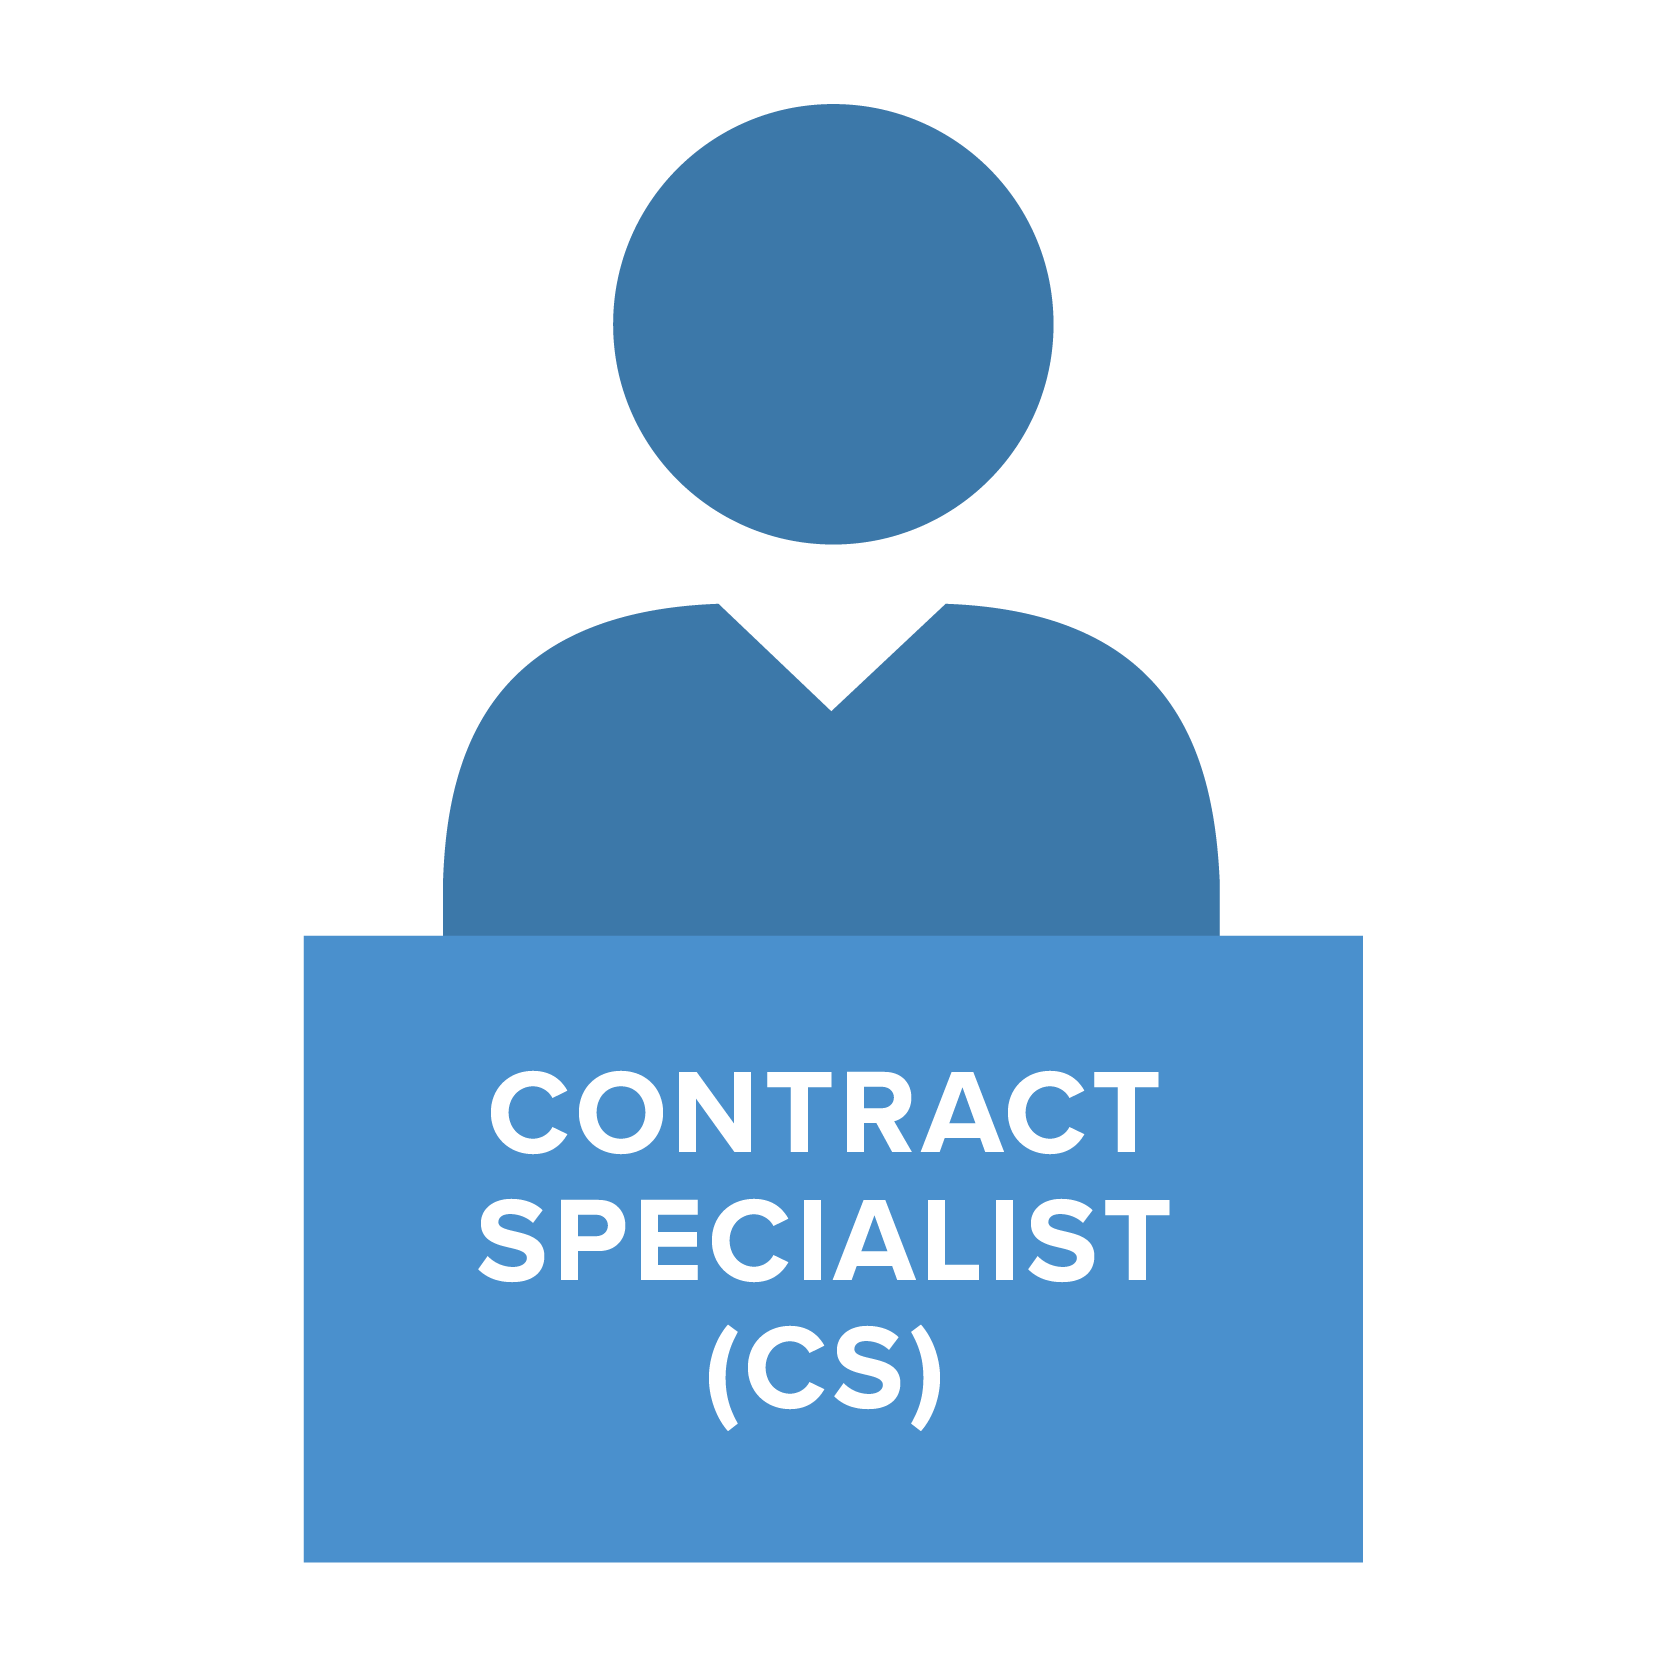 Contract Specialist